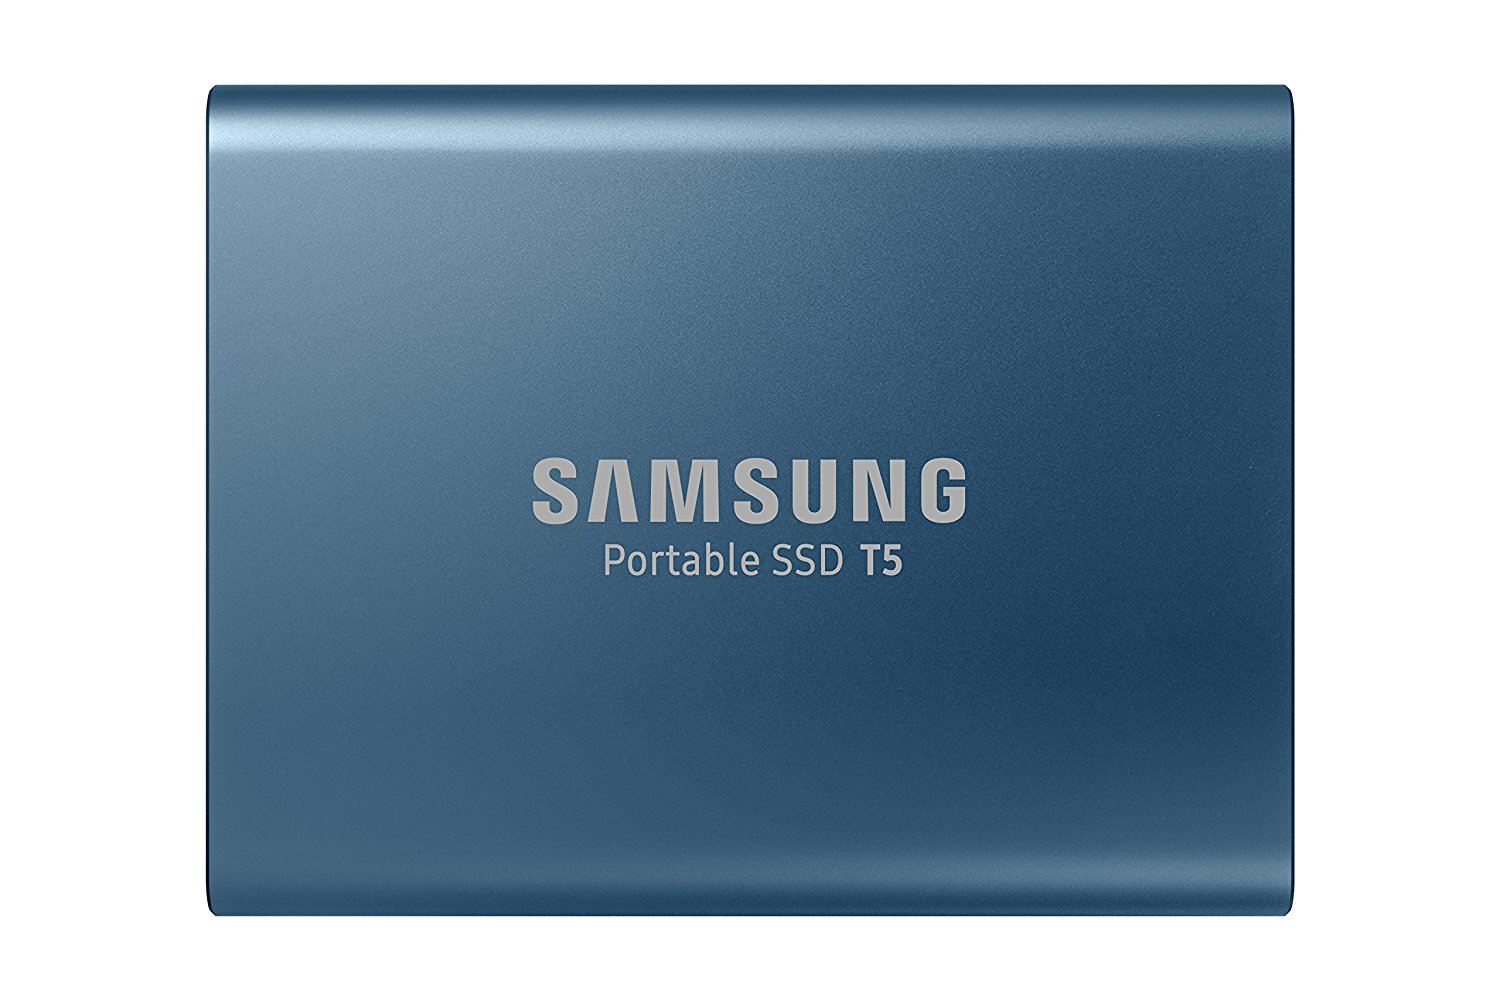 Samsung 500GB SSD T5 extern amazon